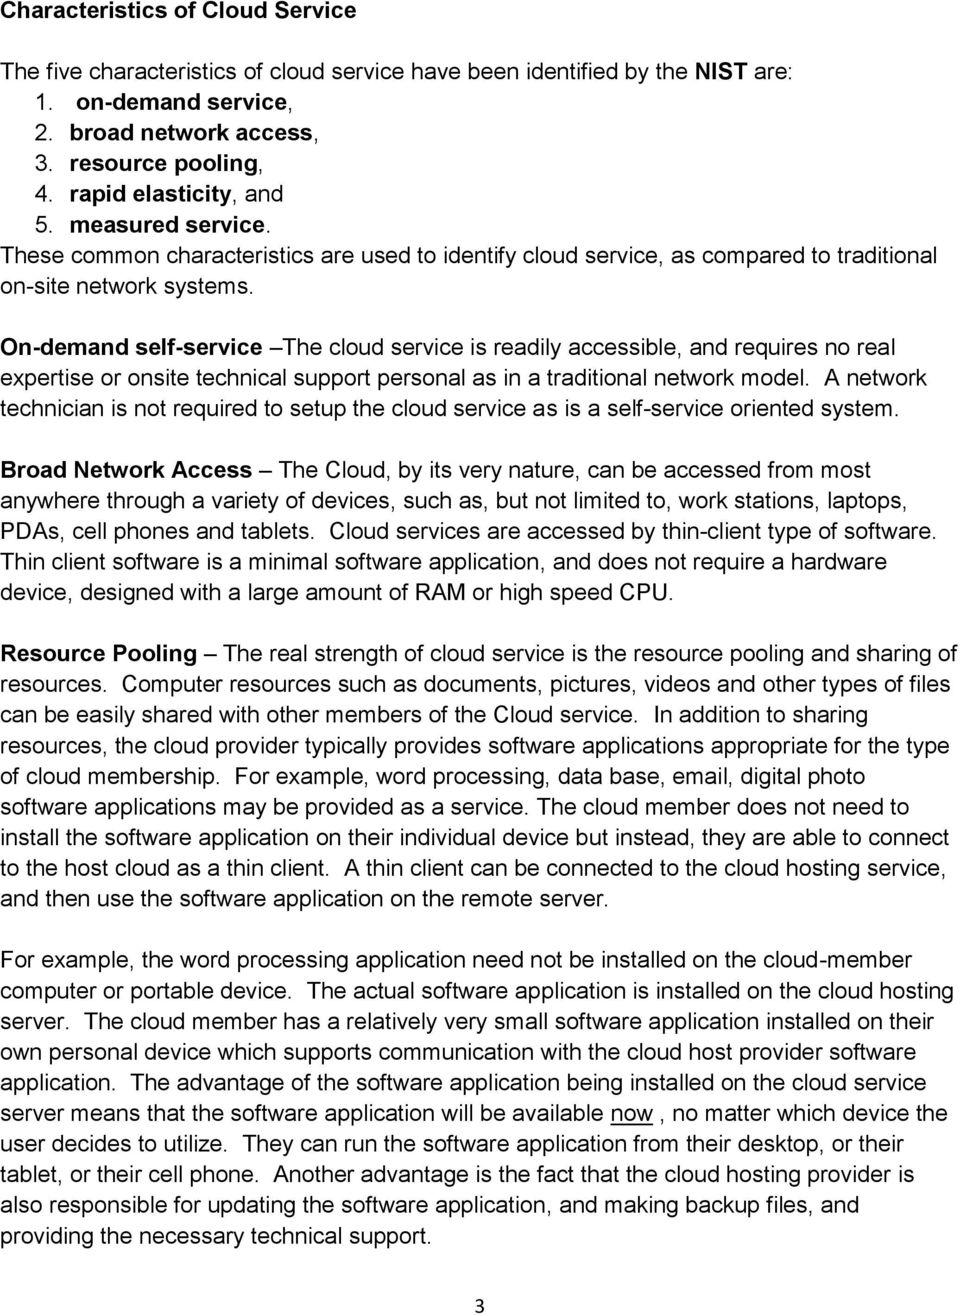 On-demand self-service The cloud service is readily accessible, and requires no real expertise or onsite technical support personal as in a traditional network model.